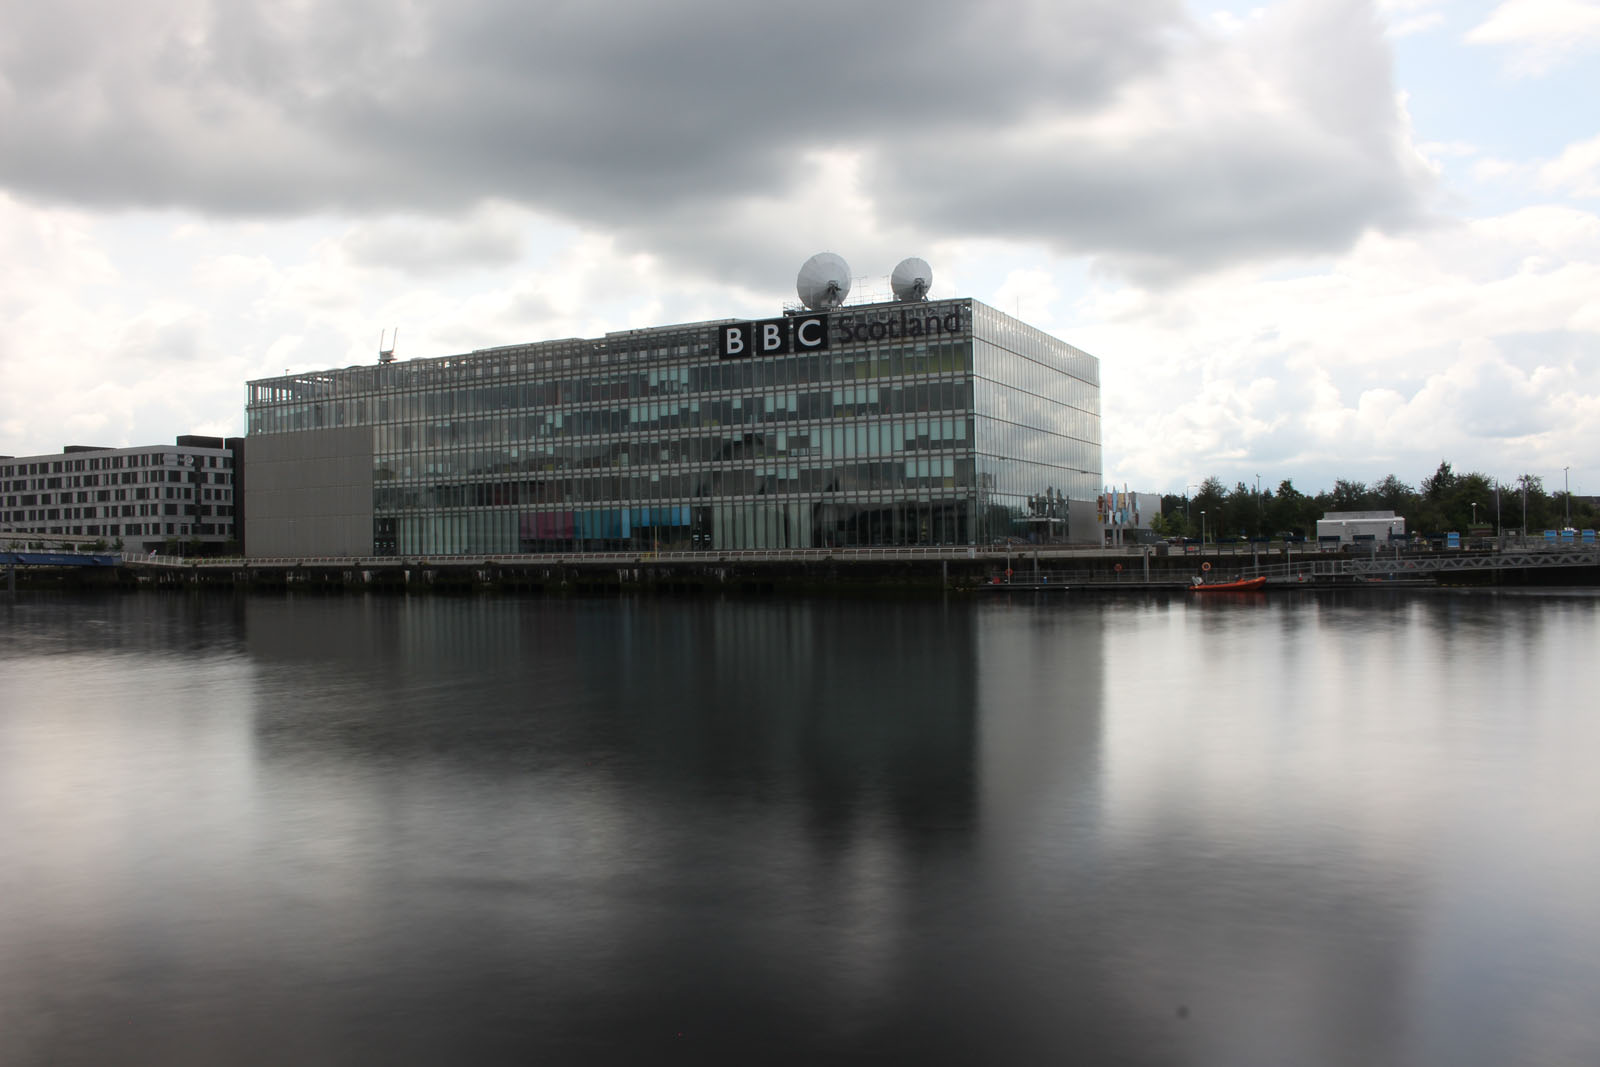 BBC Scotland in Glasgow